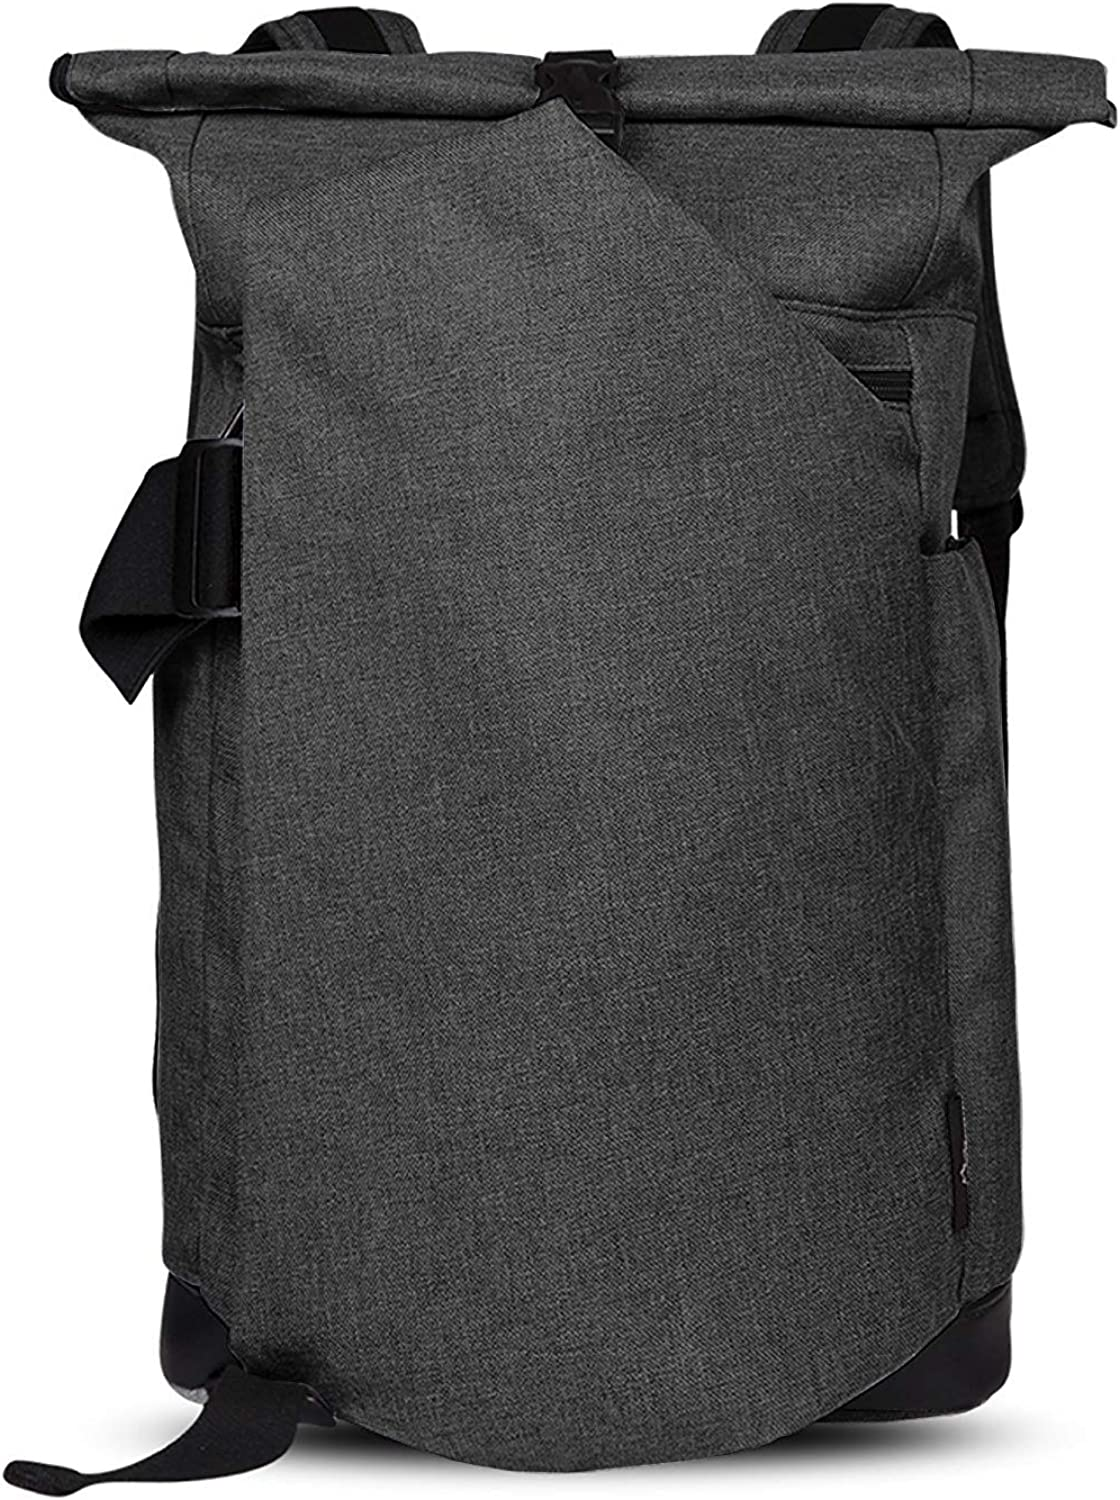 Cai Rolltop Backpack, Business Laptop Anti-Theft Rucksack School Backpack, 30L